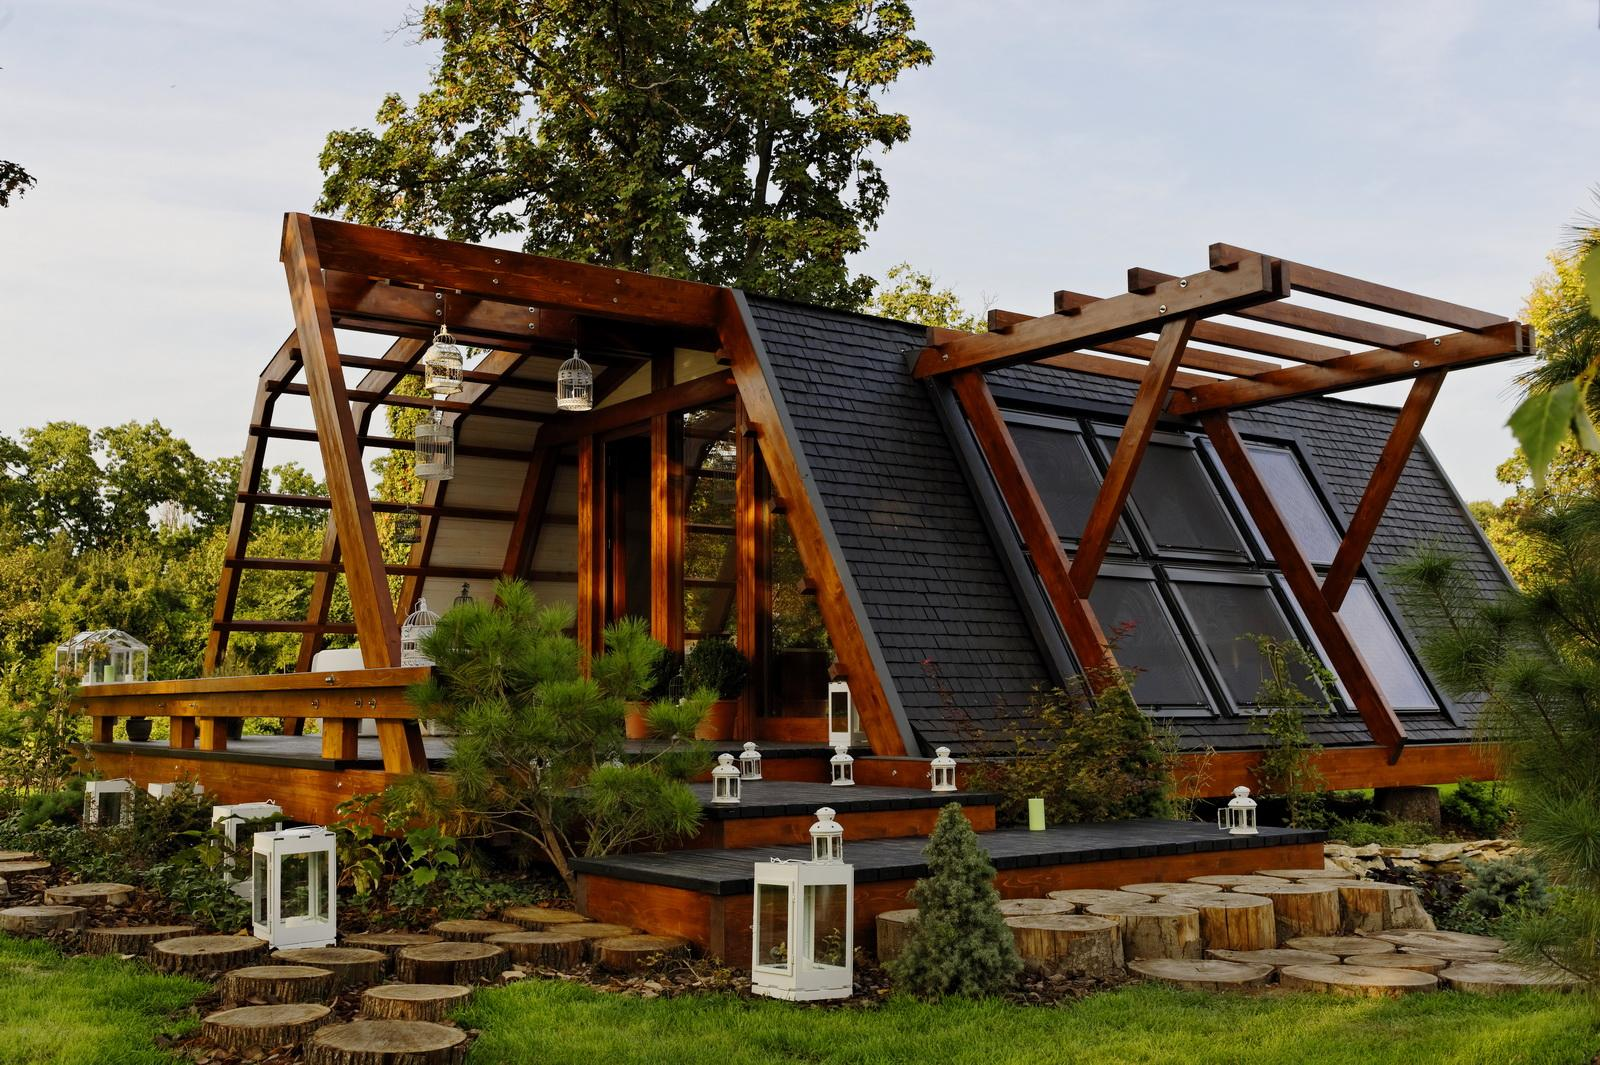 The soleta zeroenergy one small house bliss for Green homes designs